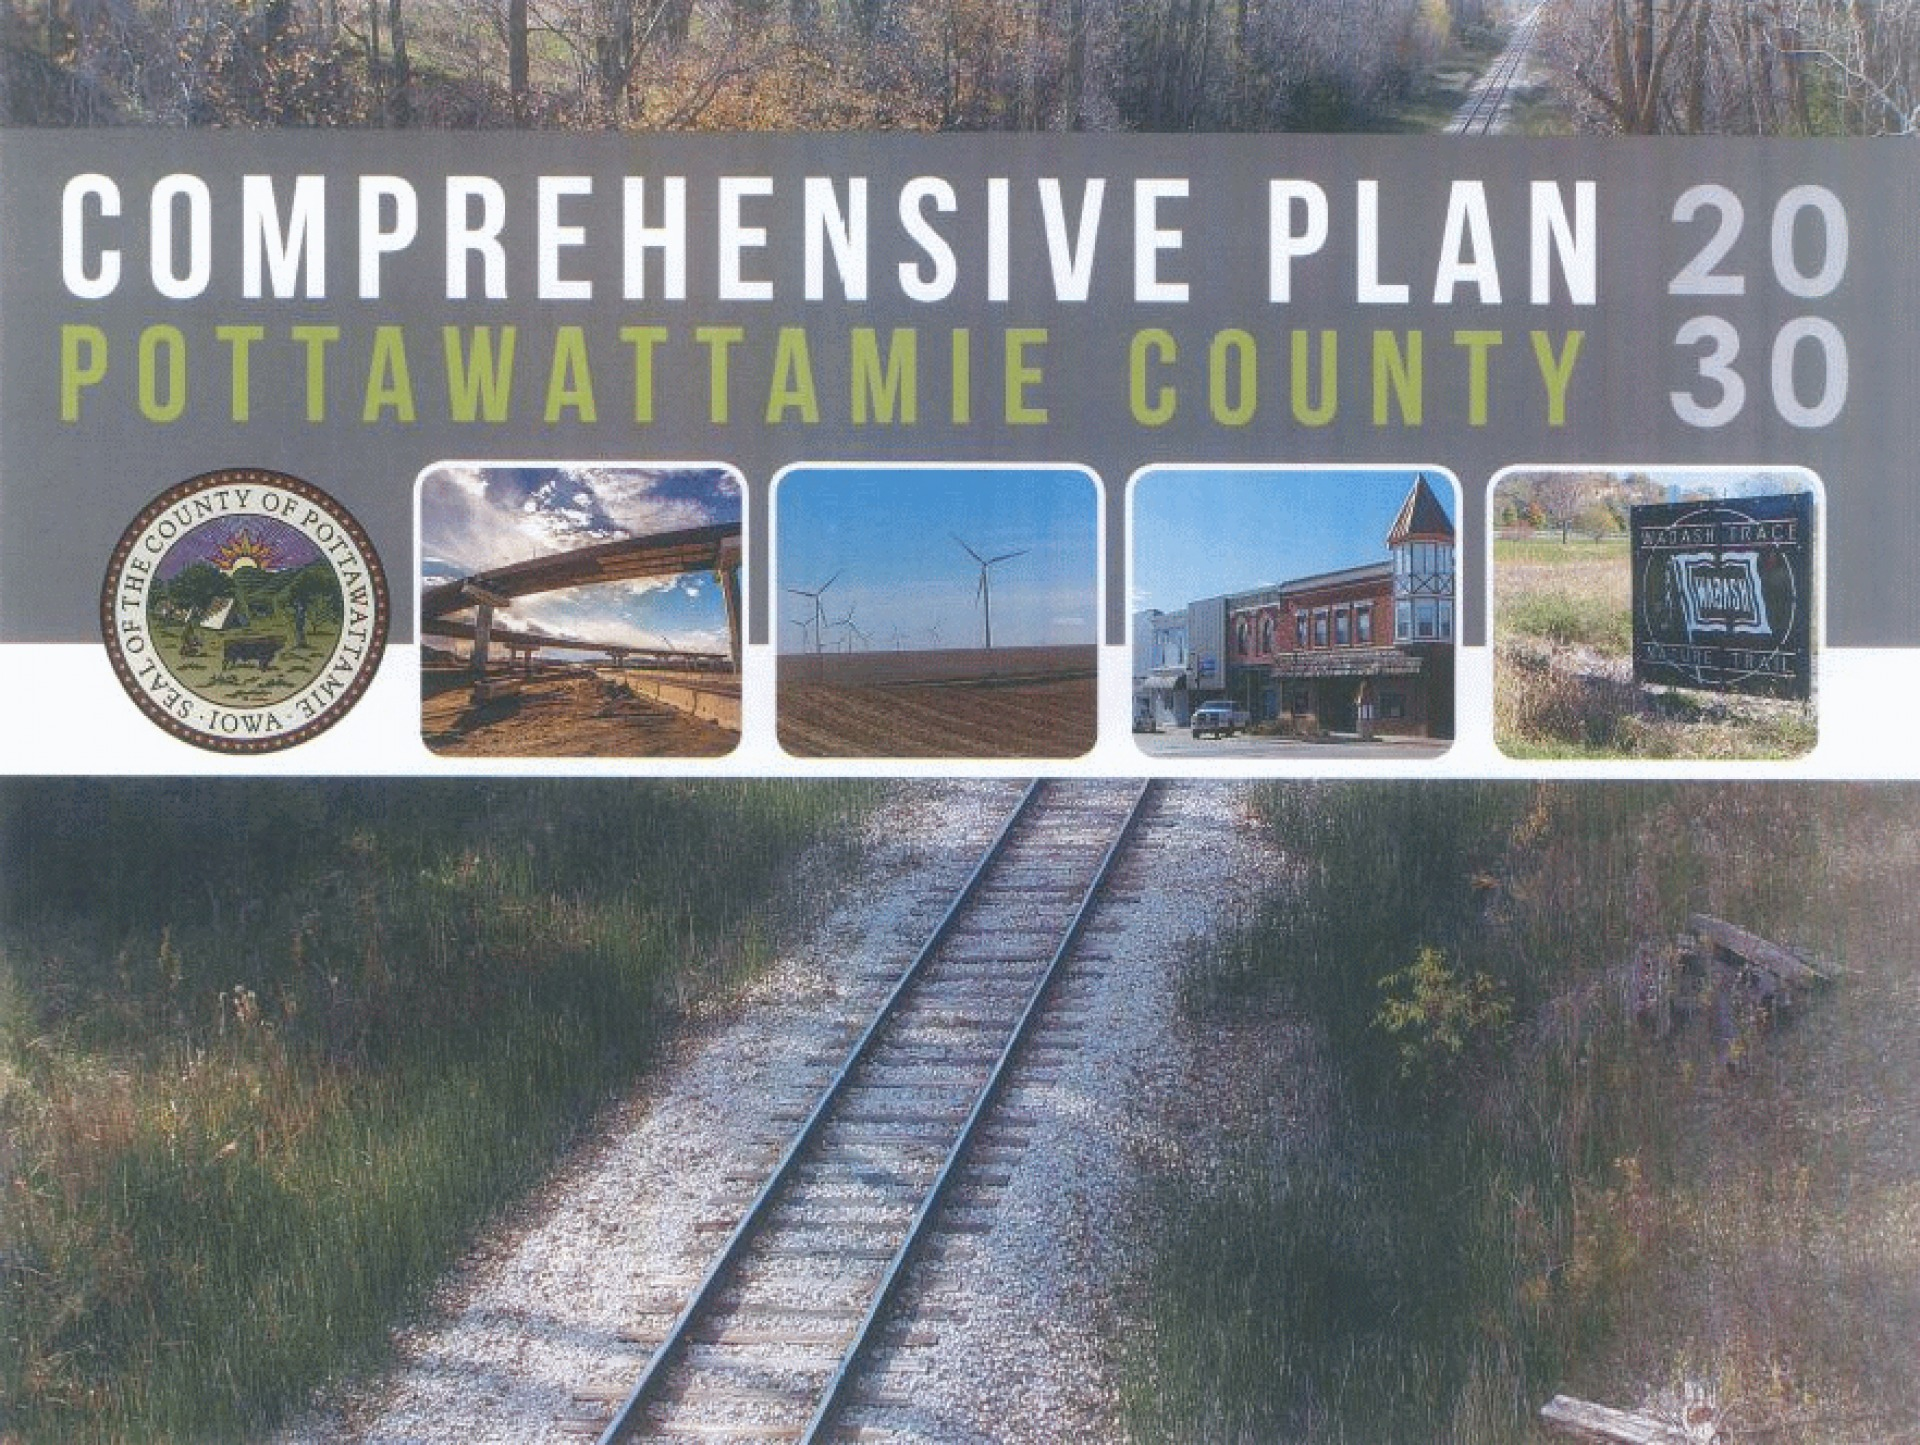 Cover of the Comprehensive Plan for Pottawattamie County 2015-2030